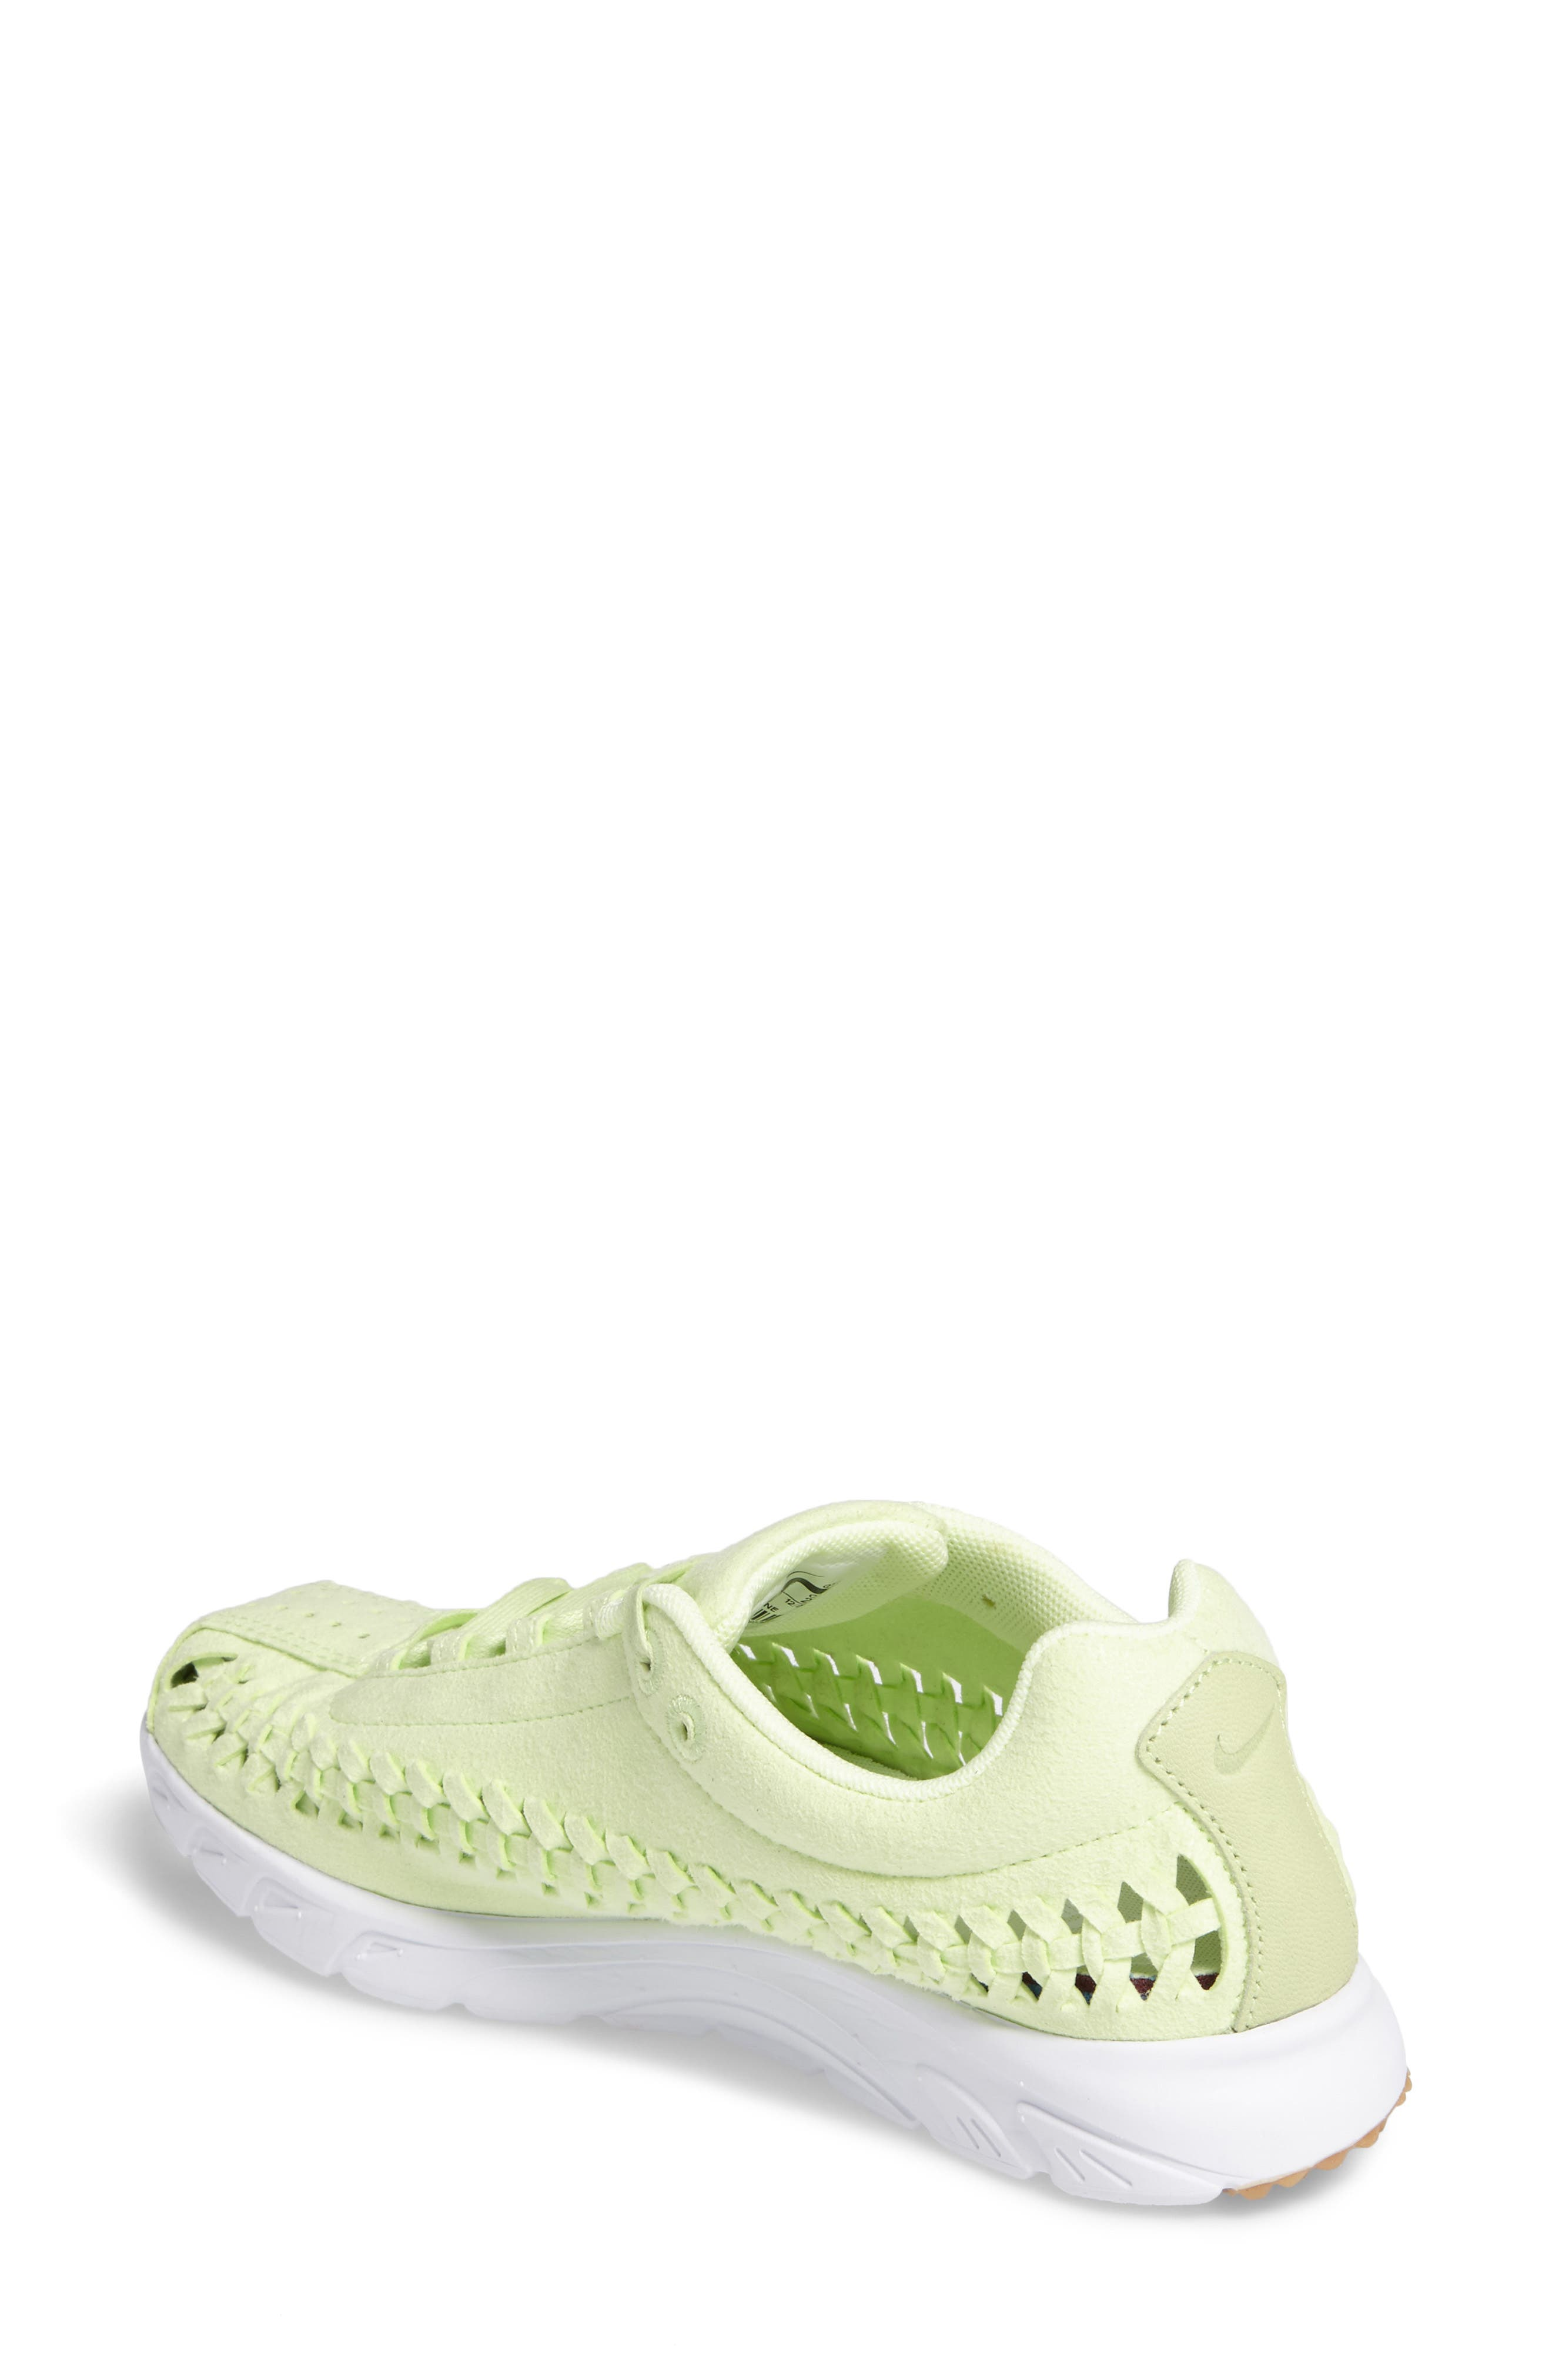 Mayfly Woven QS Sneaker,                             Alternate thumbnail 2, color,                             Liquid Lime/ Liquid Lime